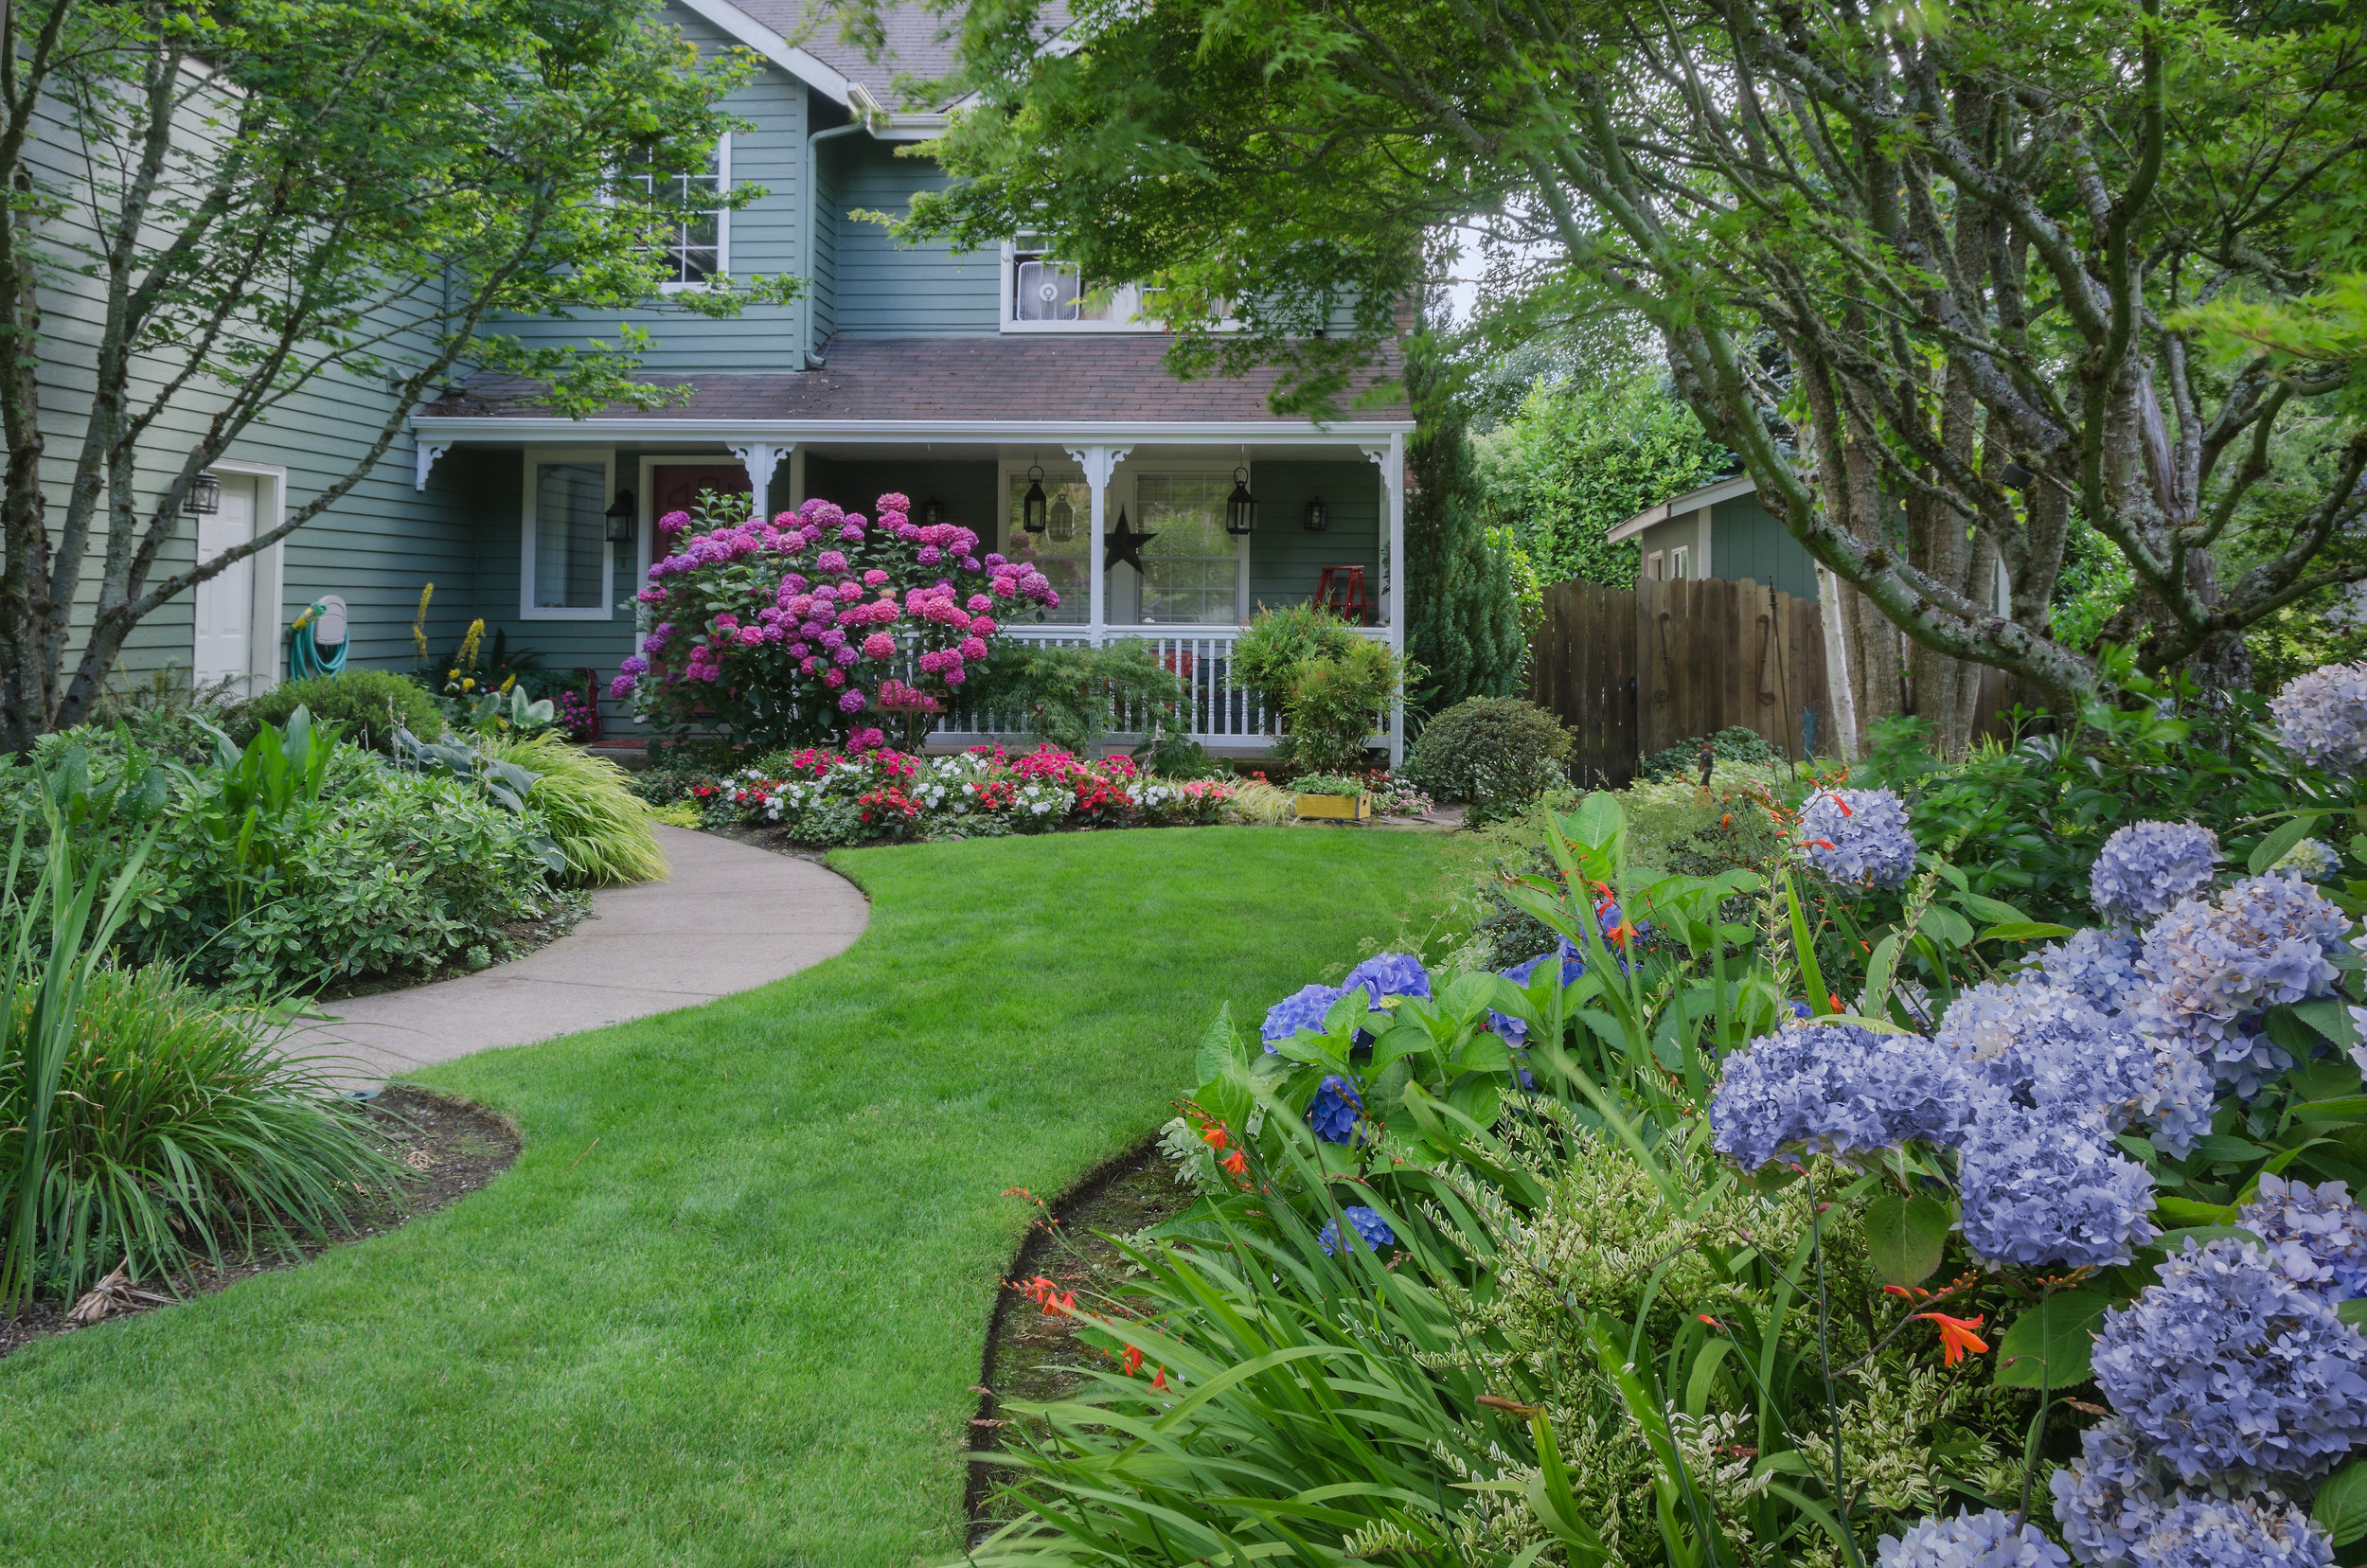 How Lawn Care Service Helps to Treat Lawn Fungus Effectively in Whitehall, PA